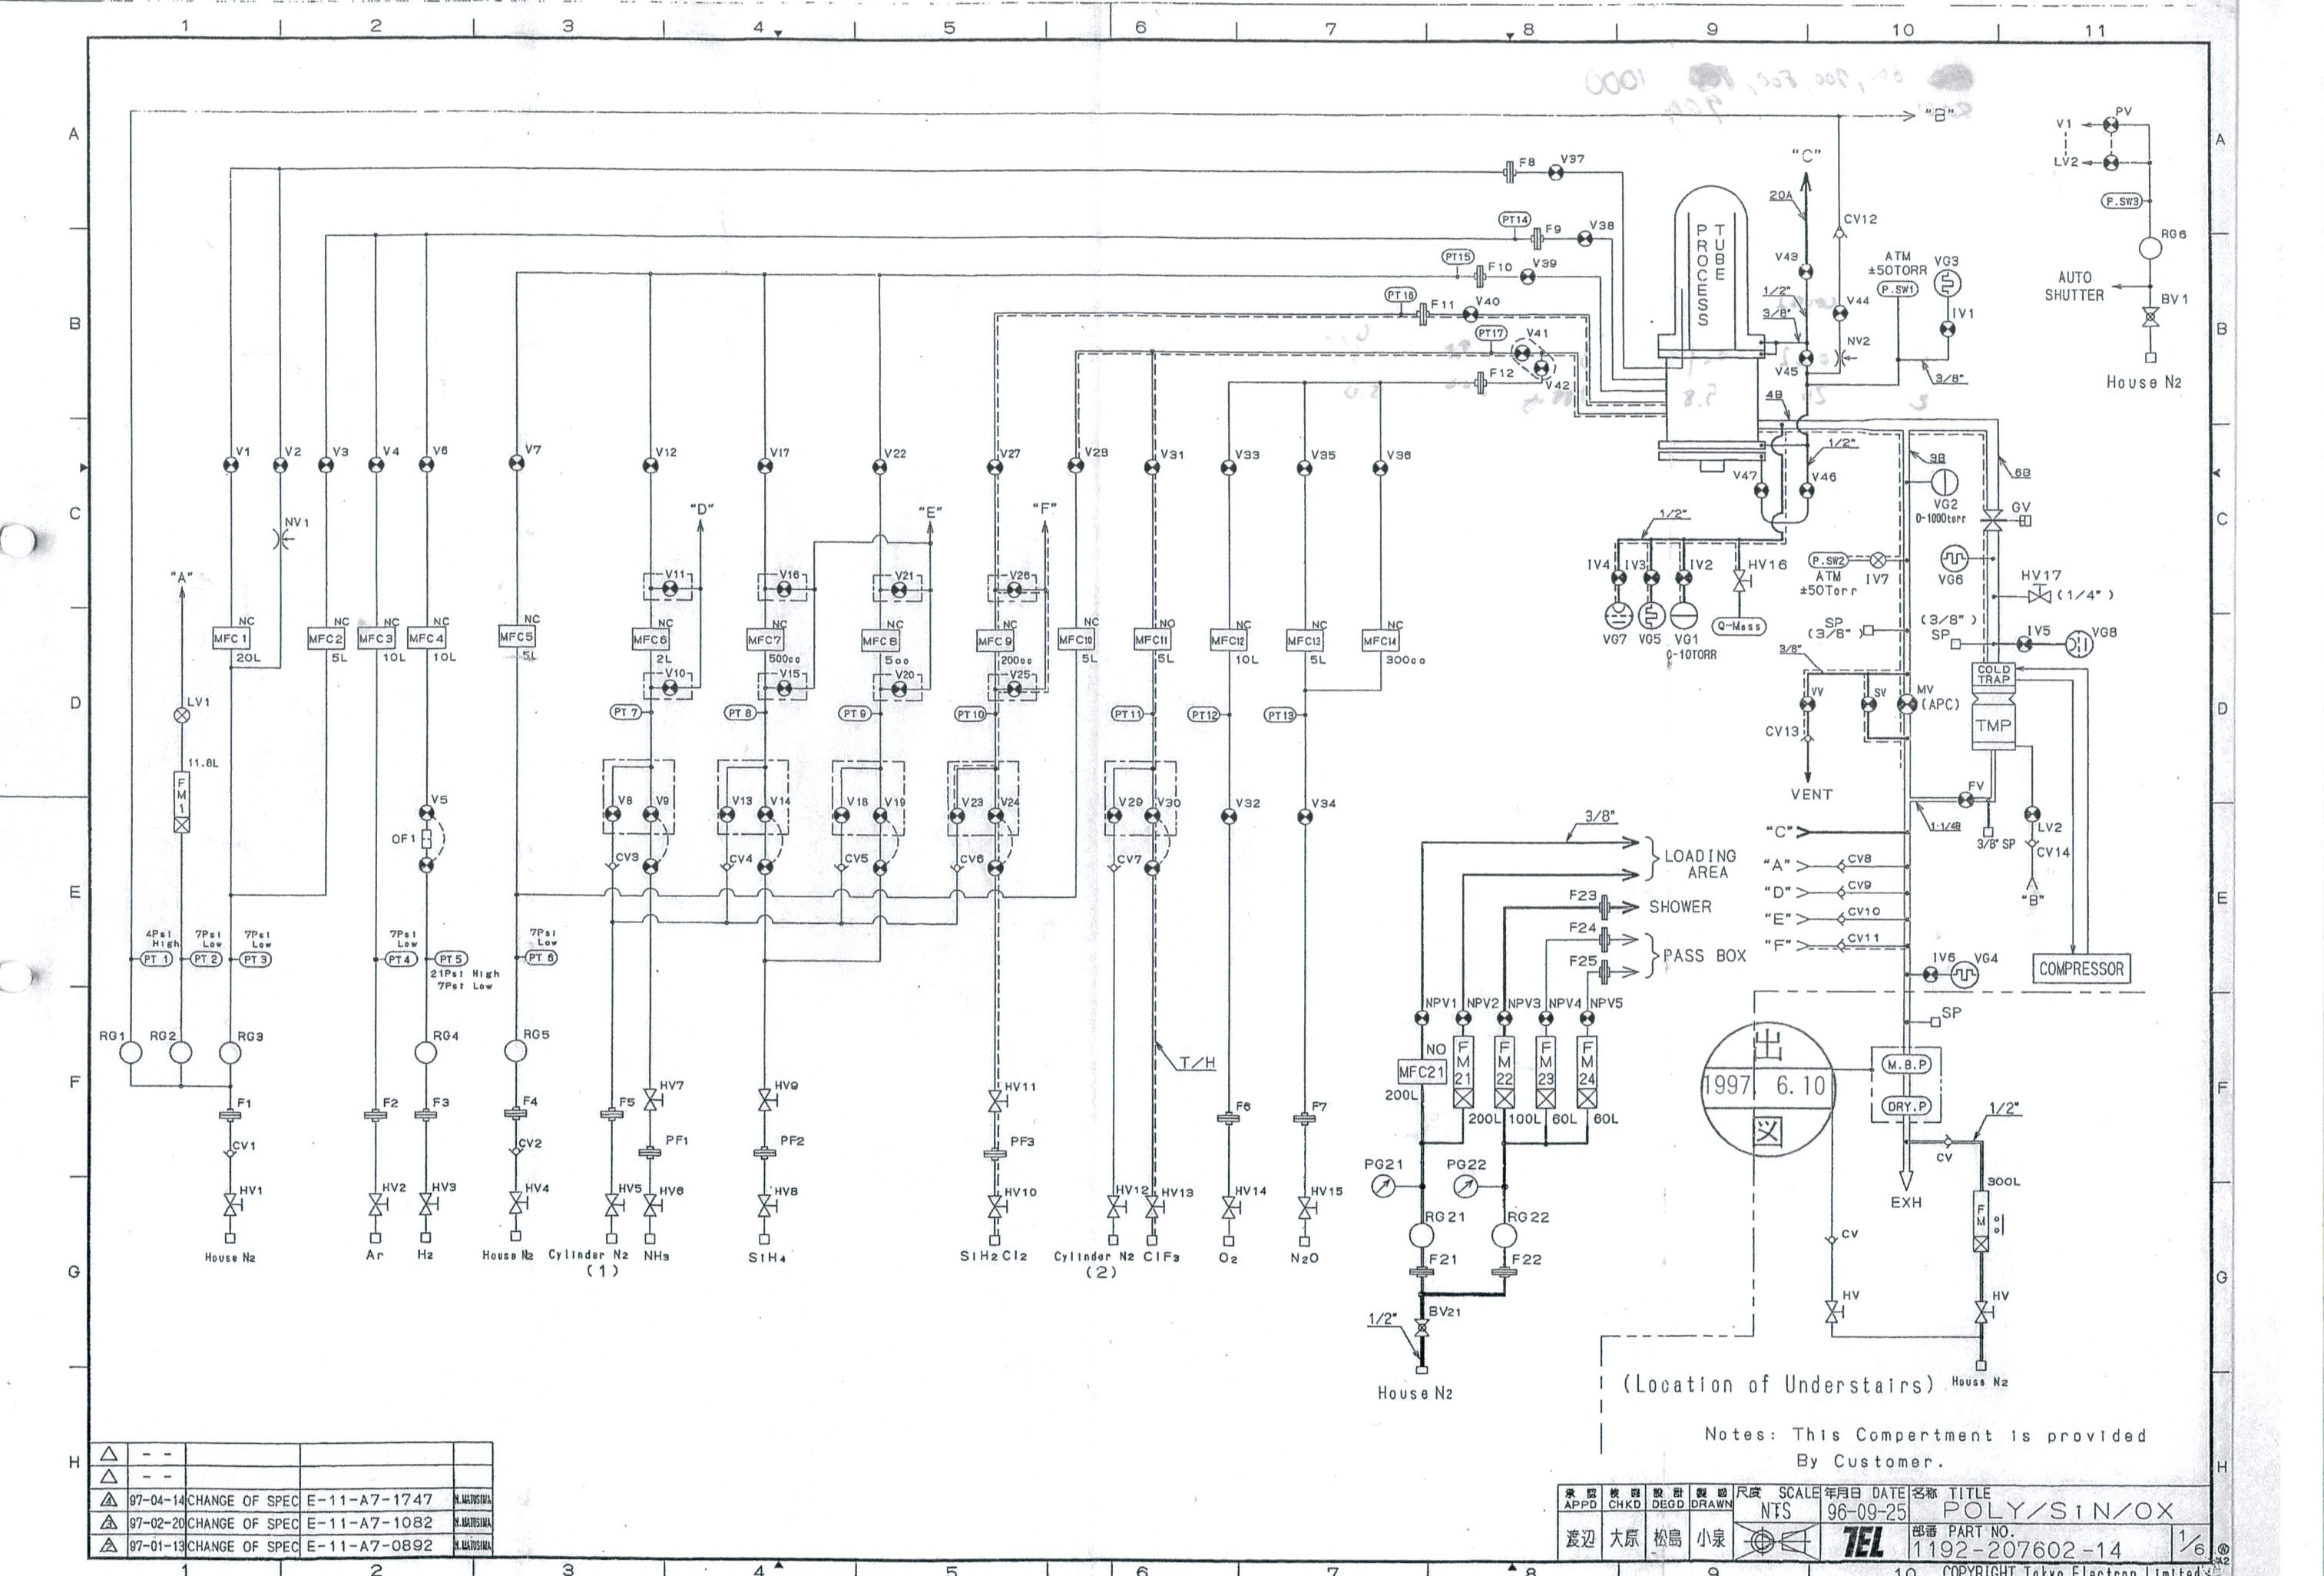 white rodgers thermostat wiring diagram 1f82 261 1966 corvette starter honeywell chronotherm iii